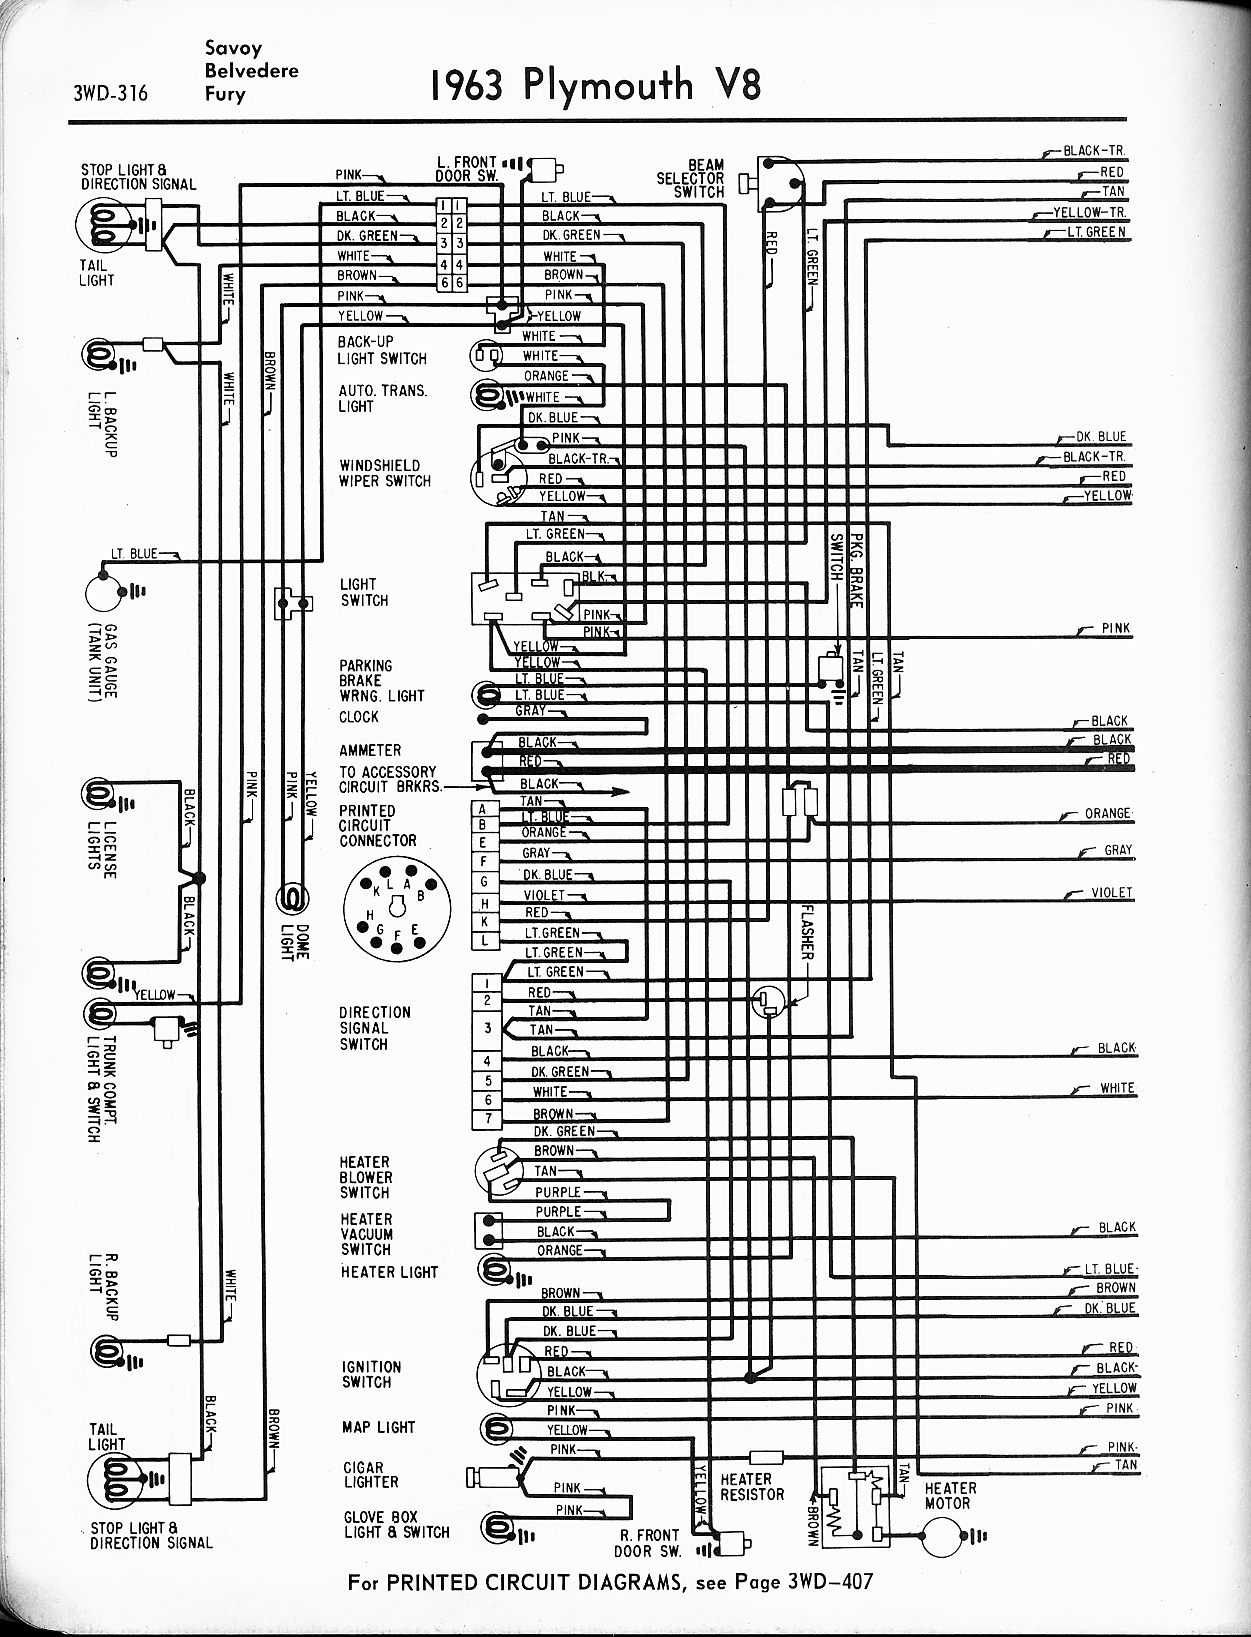 MWire5765 316 3800 series 2 wiring diagram gm ecu pinout \u2022 wiring diagrams j Pontiac G5 Fuse Box Location at bakdesigns.co